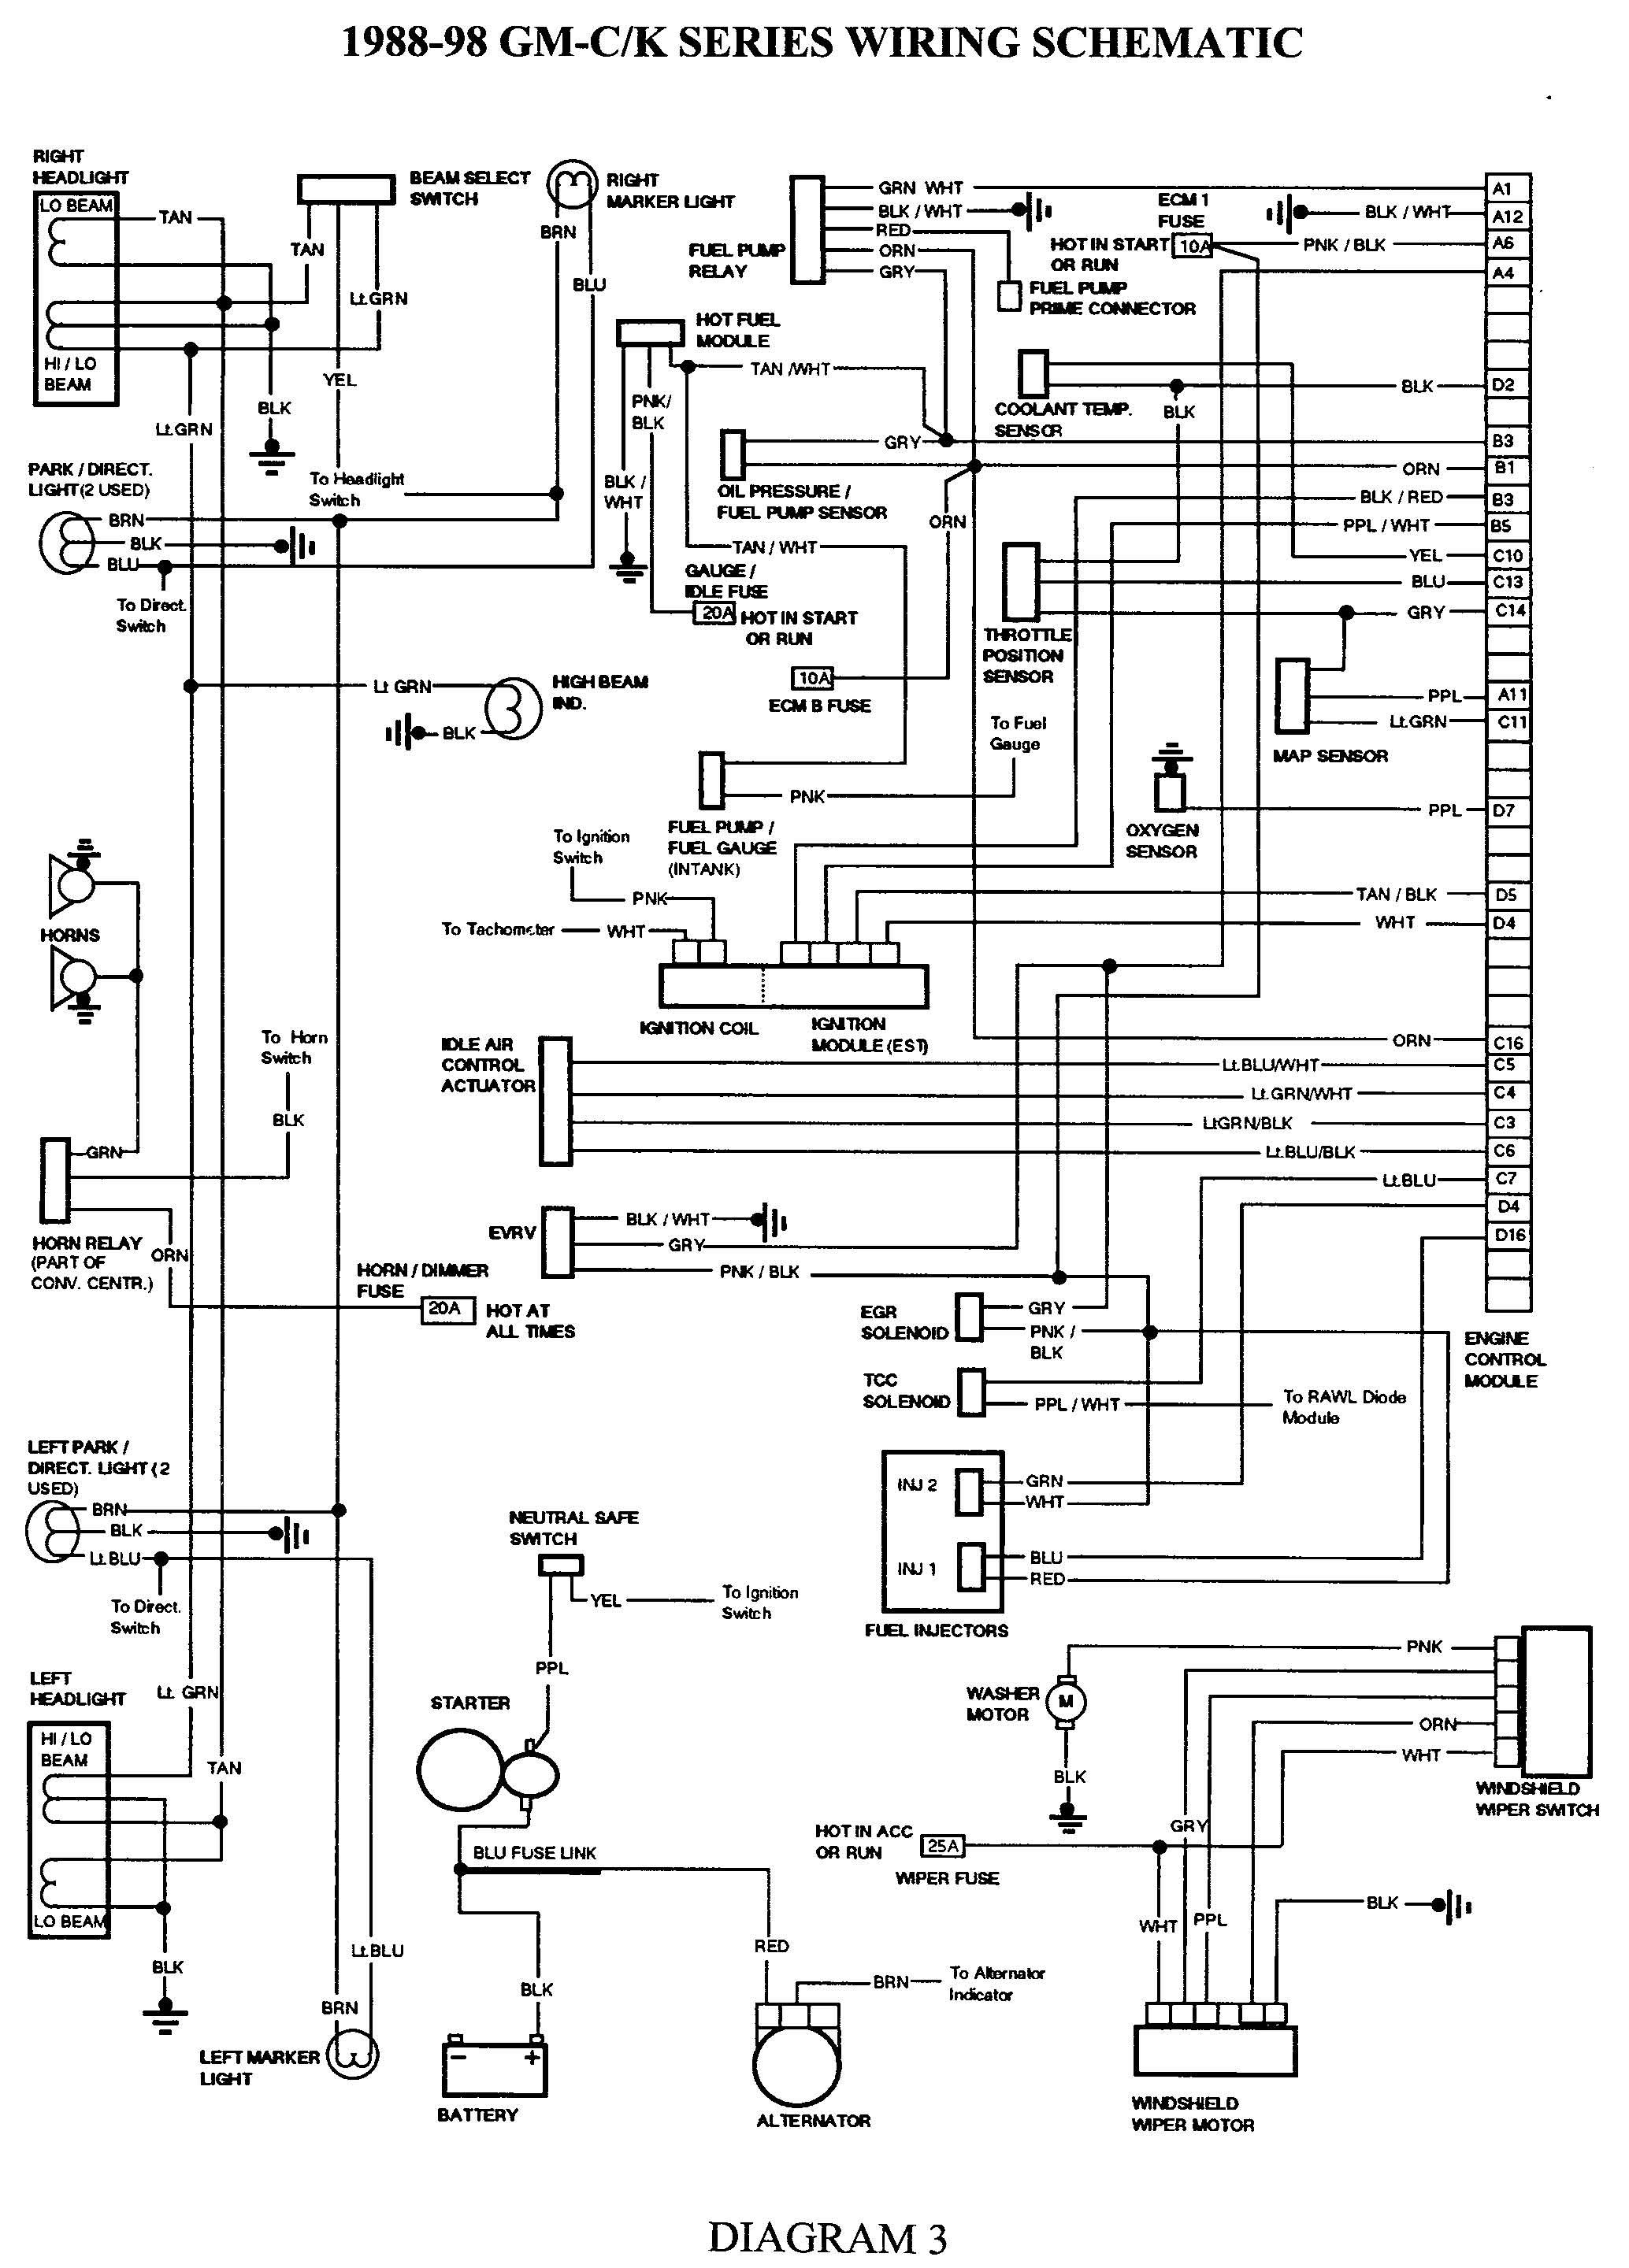 b2f2e5dbdc07dada83ef514f6d4ce3d4 gmc truck wiring diagrams on gm wiring harness diagram 88 98 kc 1987 chevy truck wiring harness at webbmarketing.co